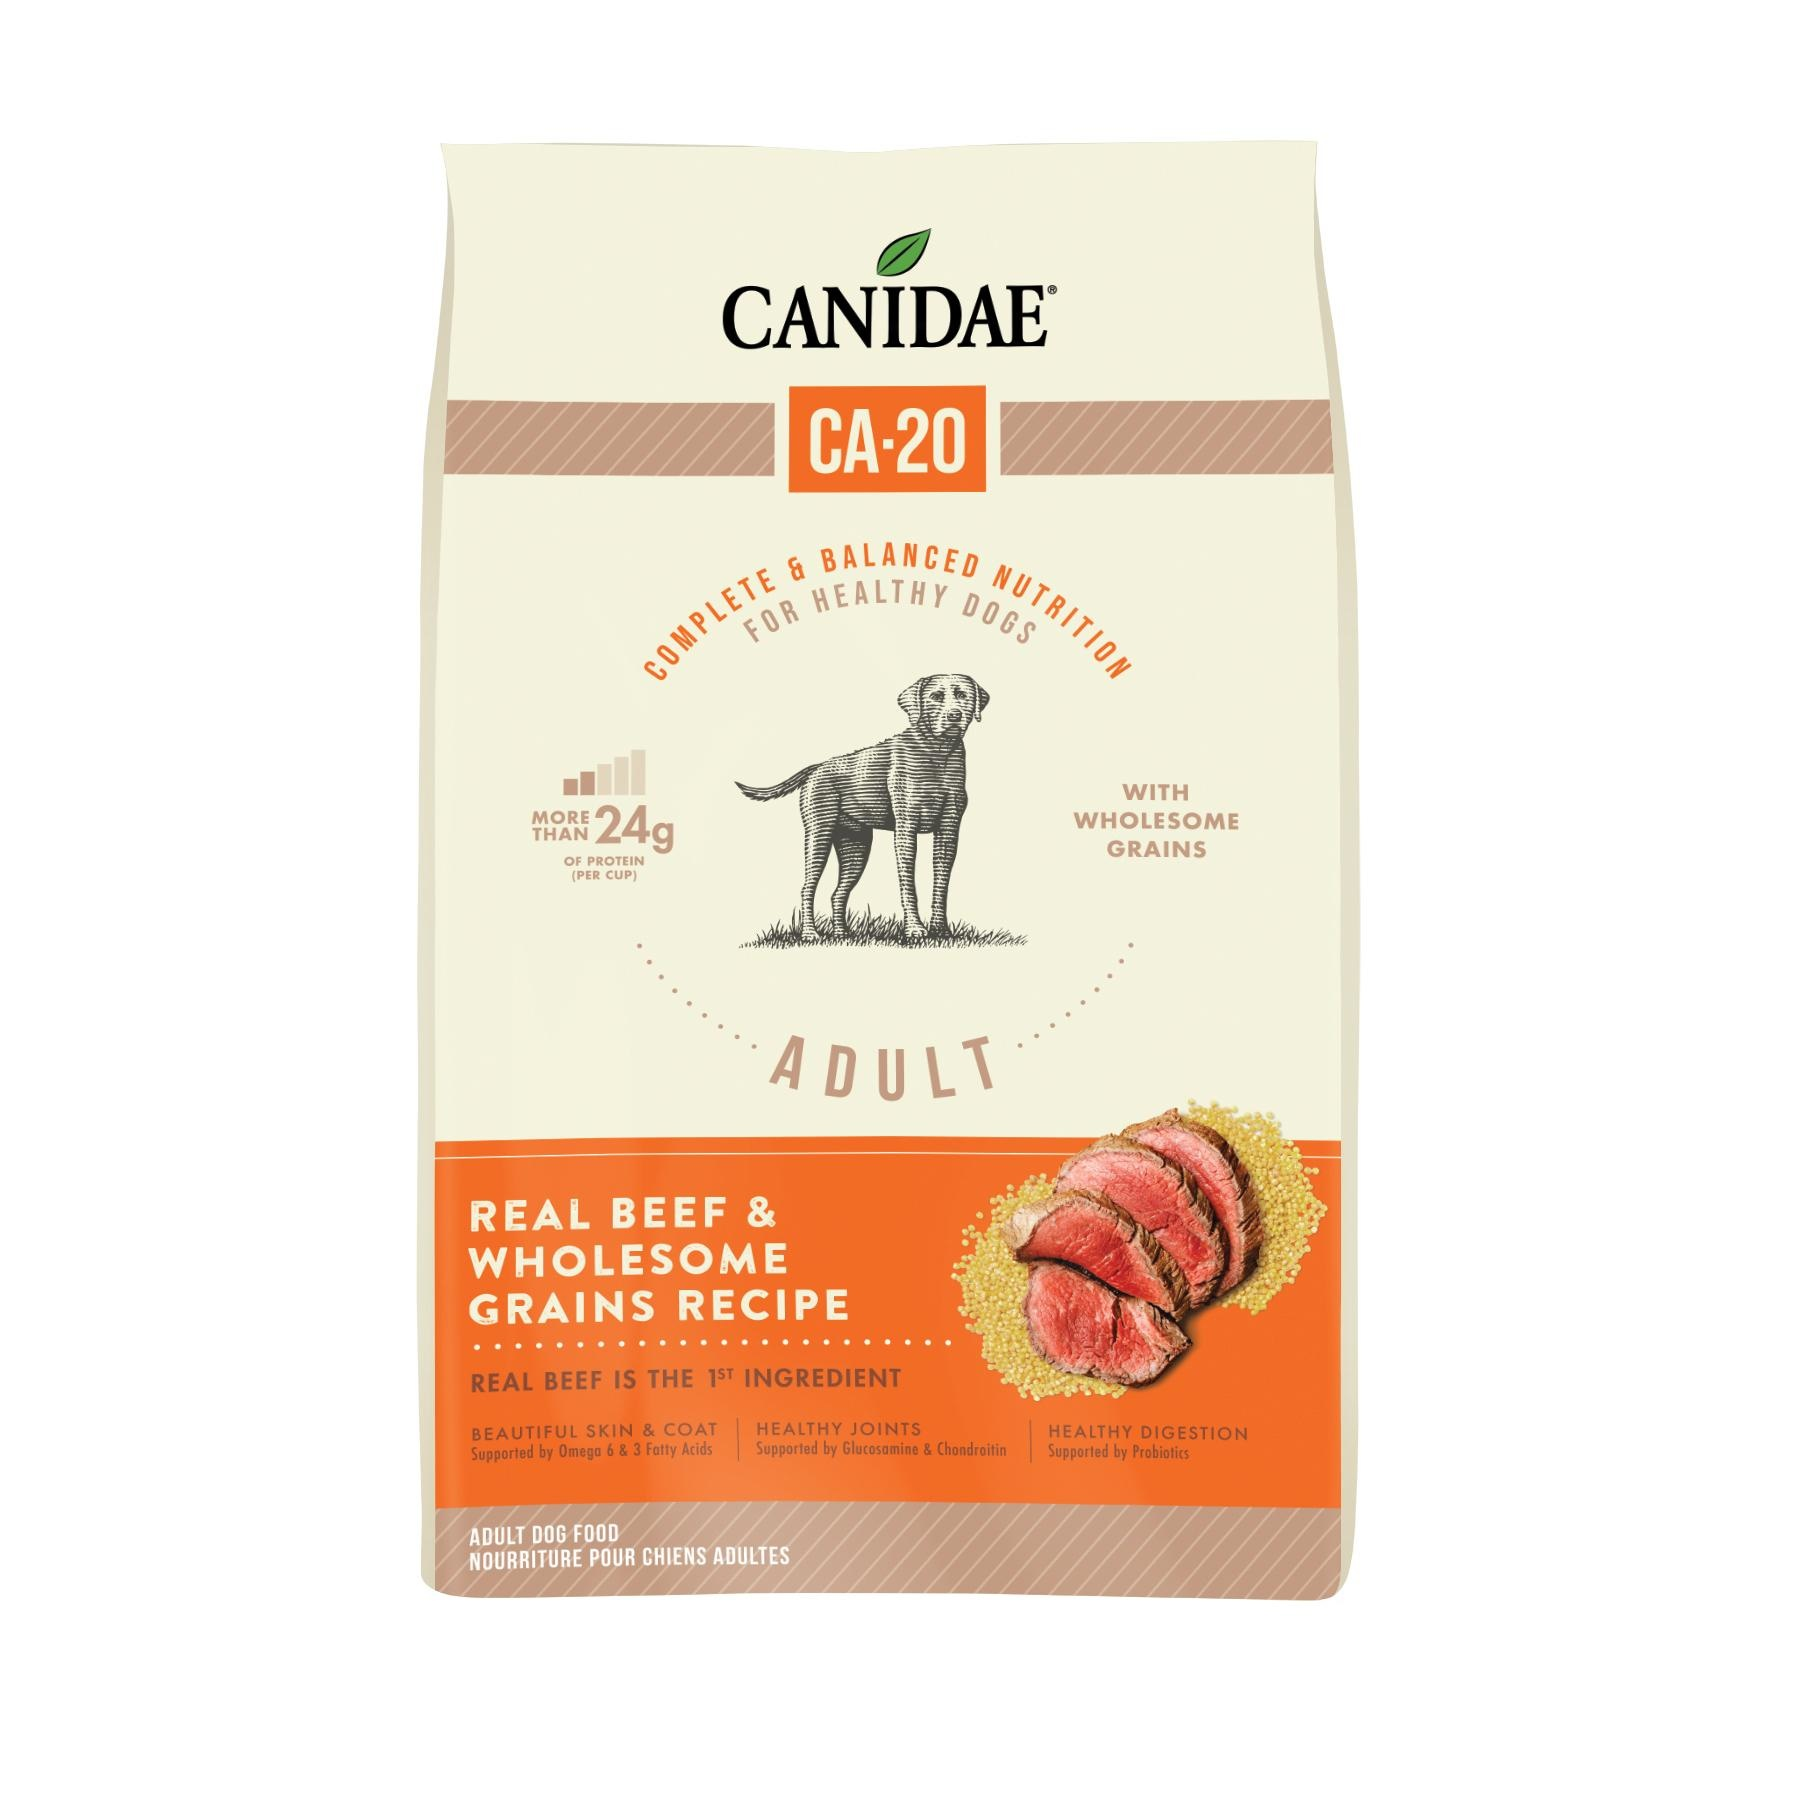 Canidae (Diamond) Canidae CA20 Beef & Wholesome Grains 7 lb